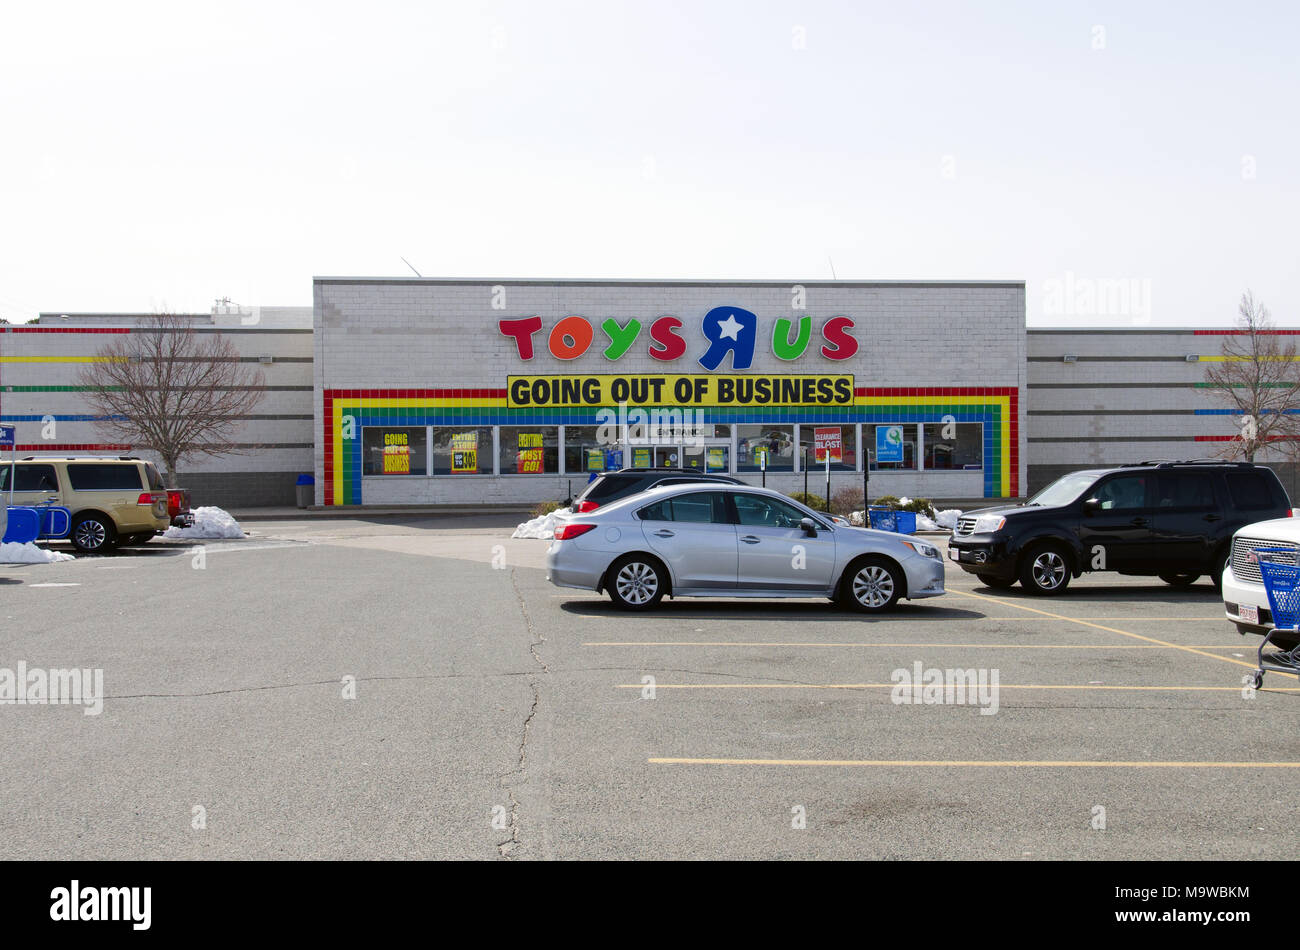 Toys R Us With Going Out Of Business Banner Across The Front